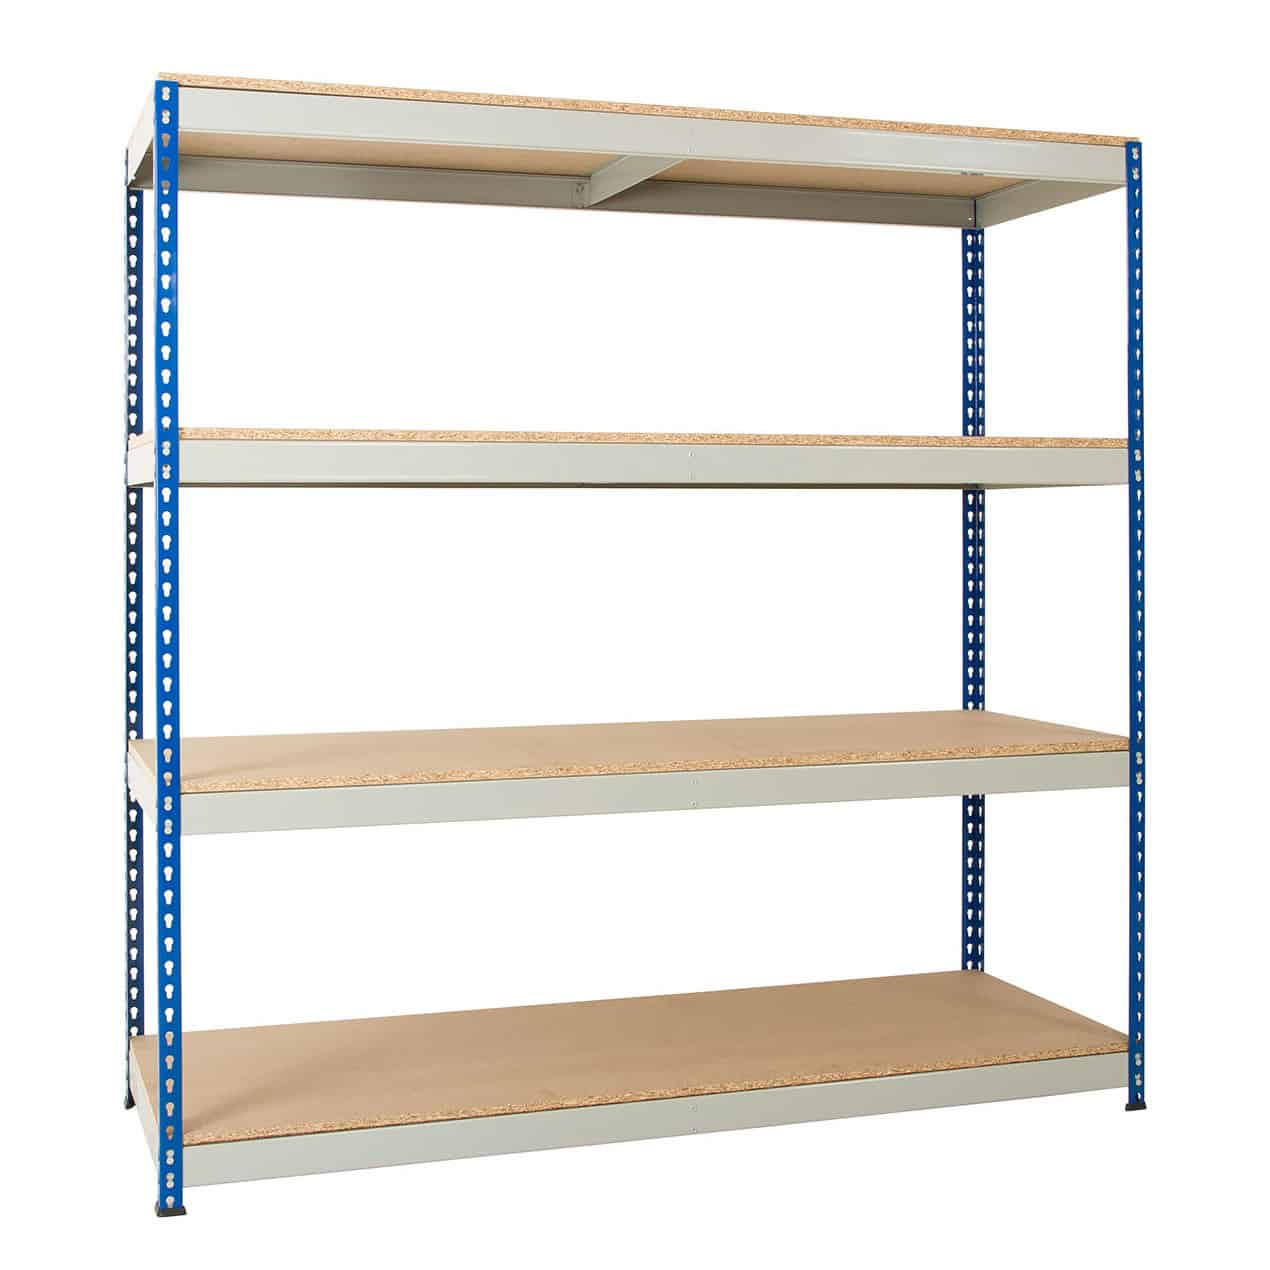 Medium Duty Rivet Racking 4 Levels